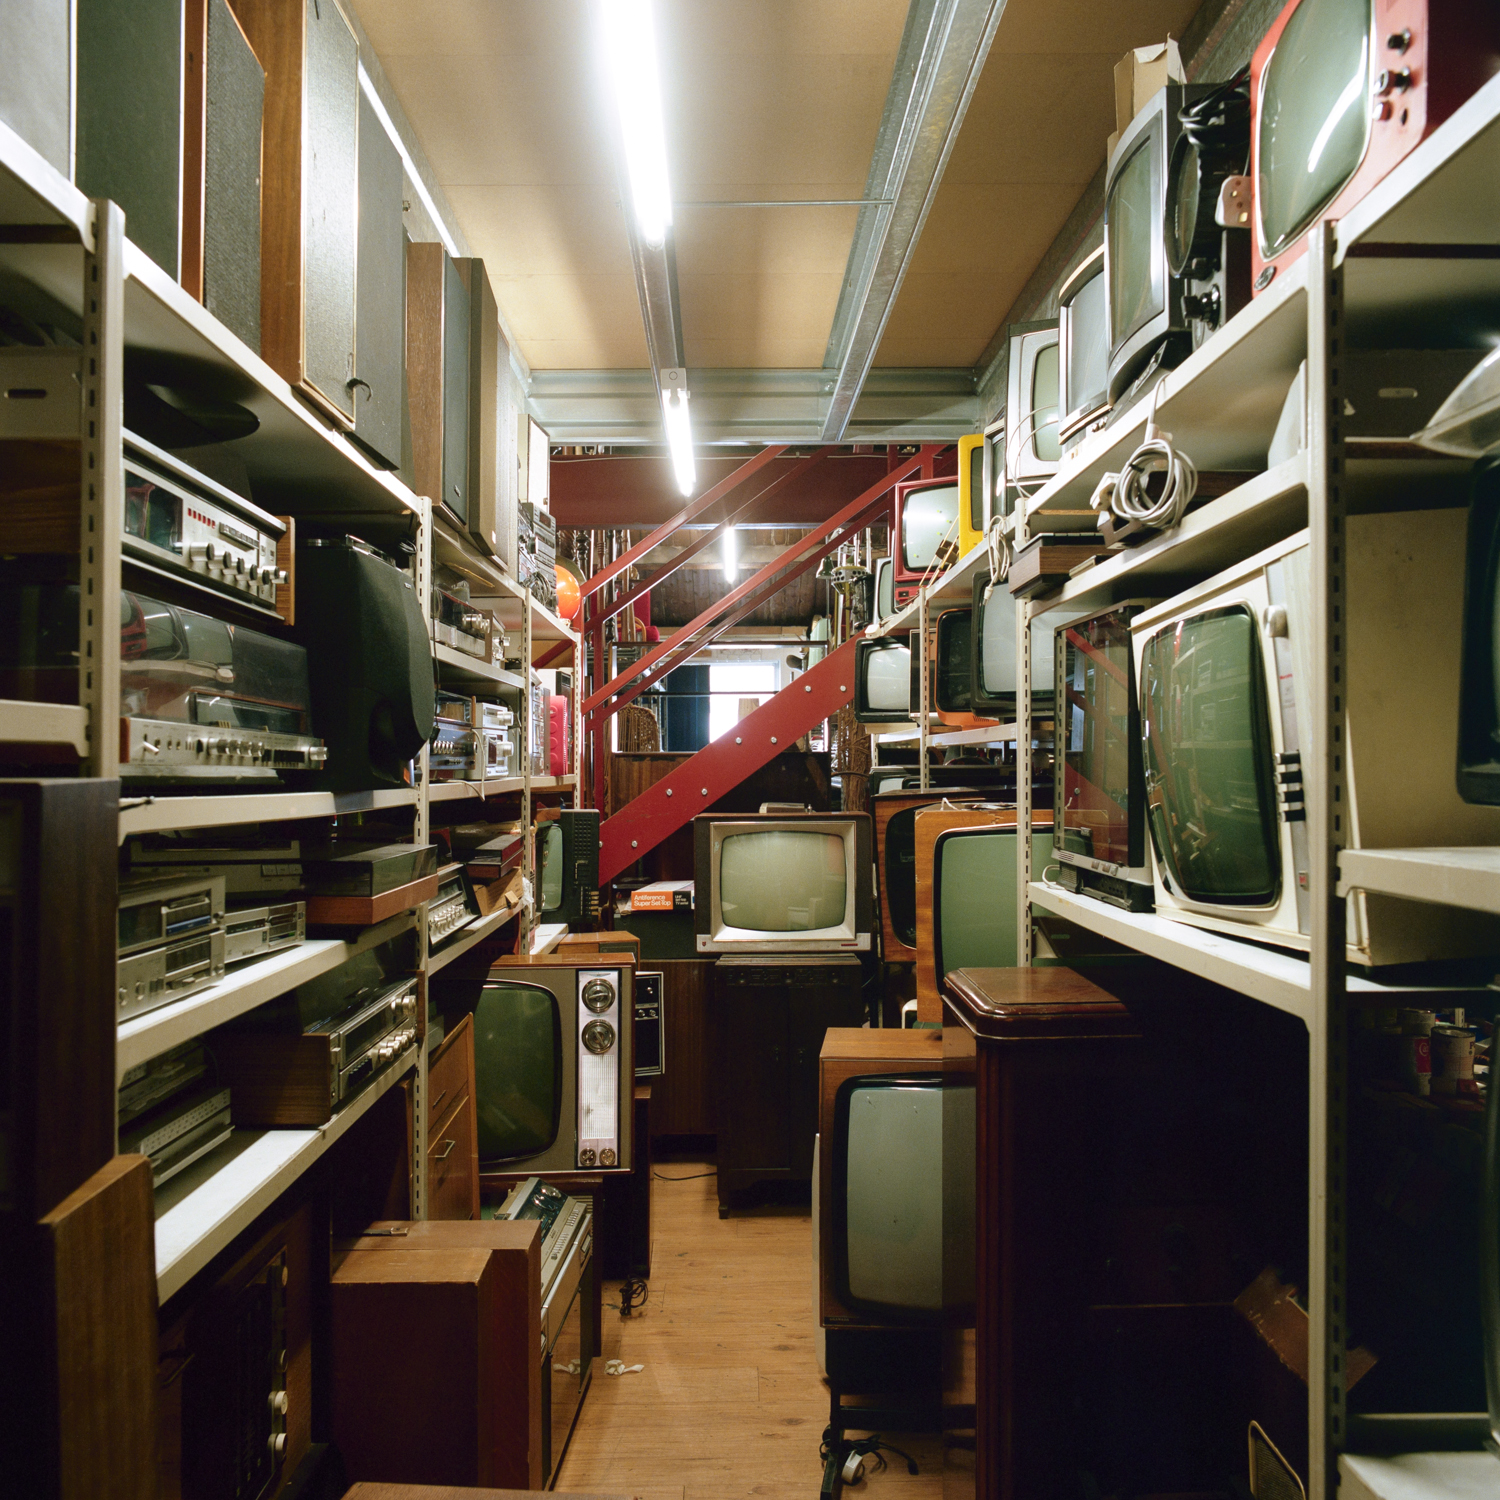 One corner of the prop house is crammed with old televisions, ranging from early models to those of the late 1980s